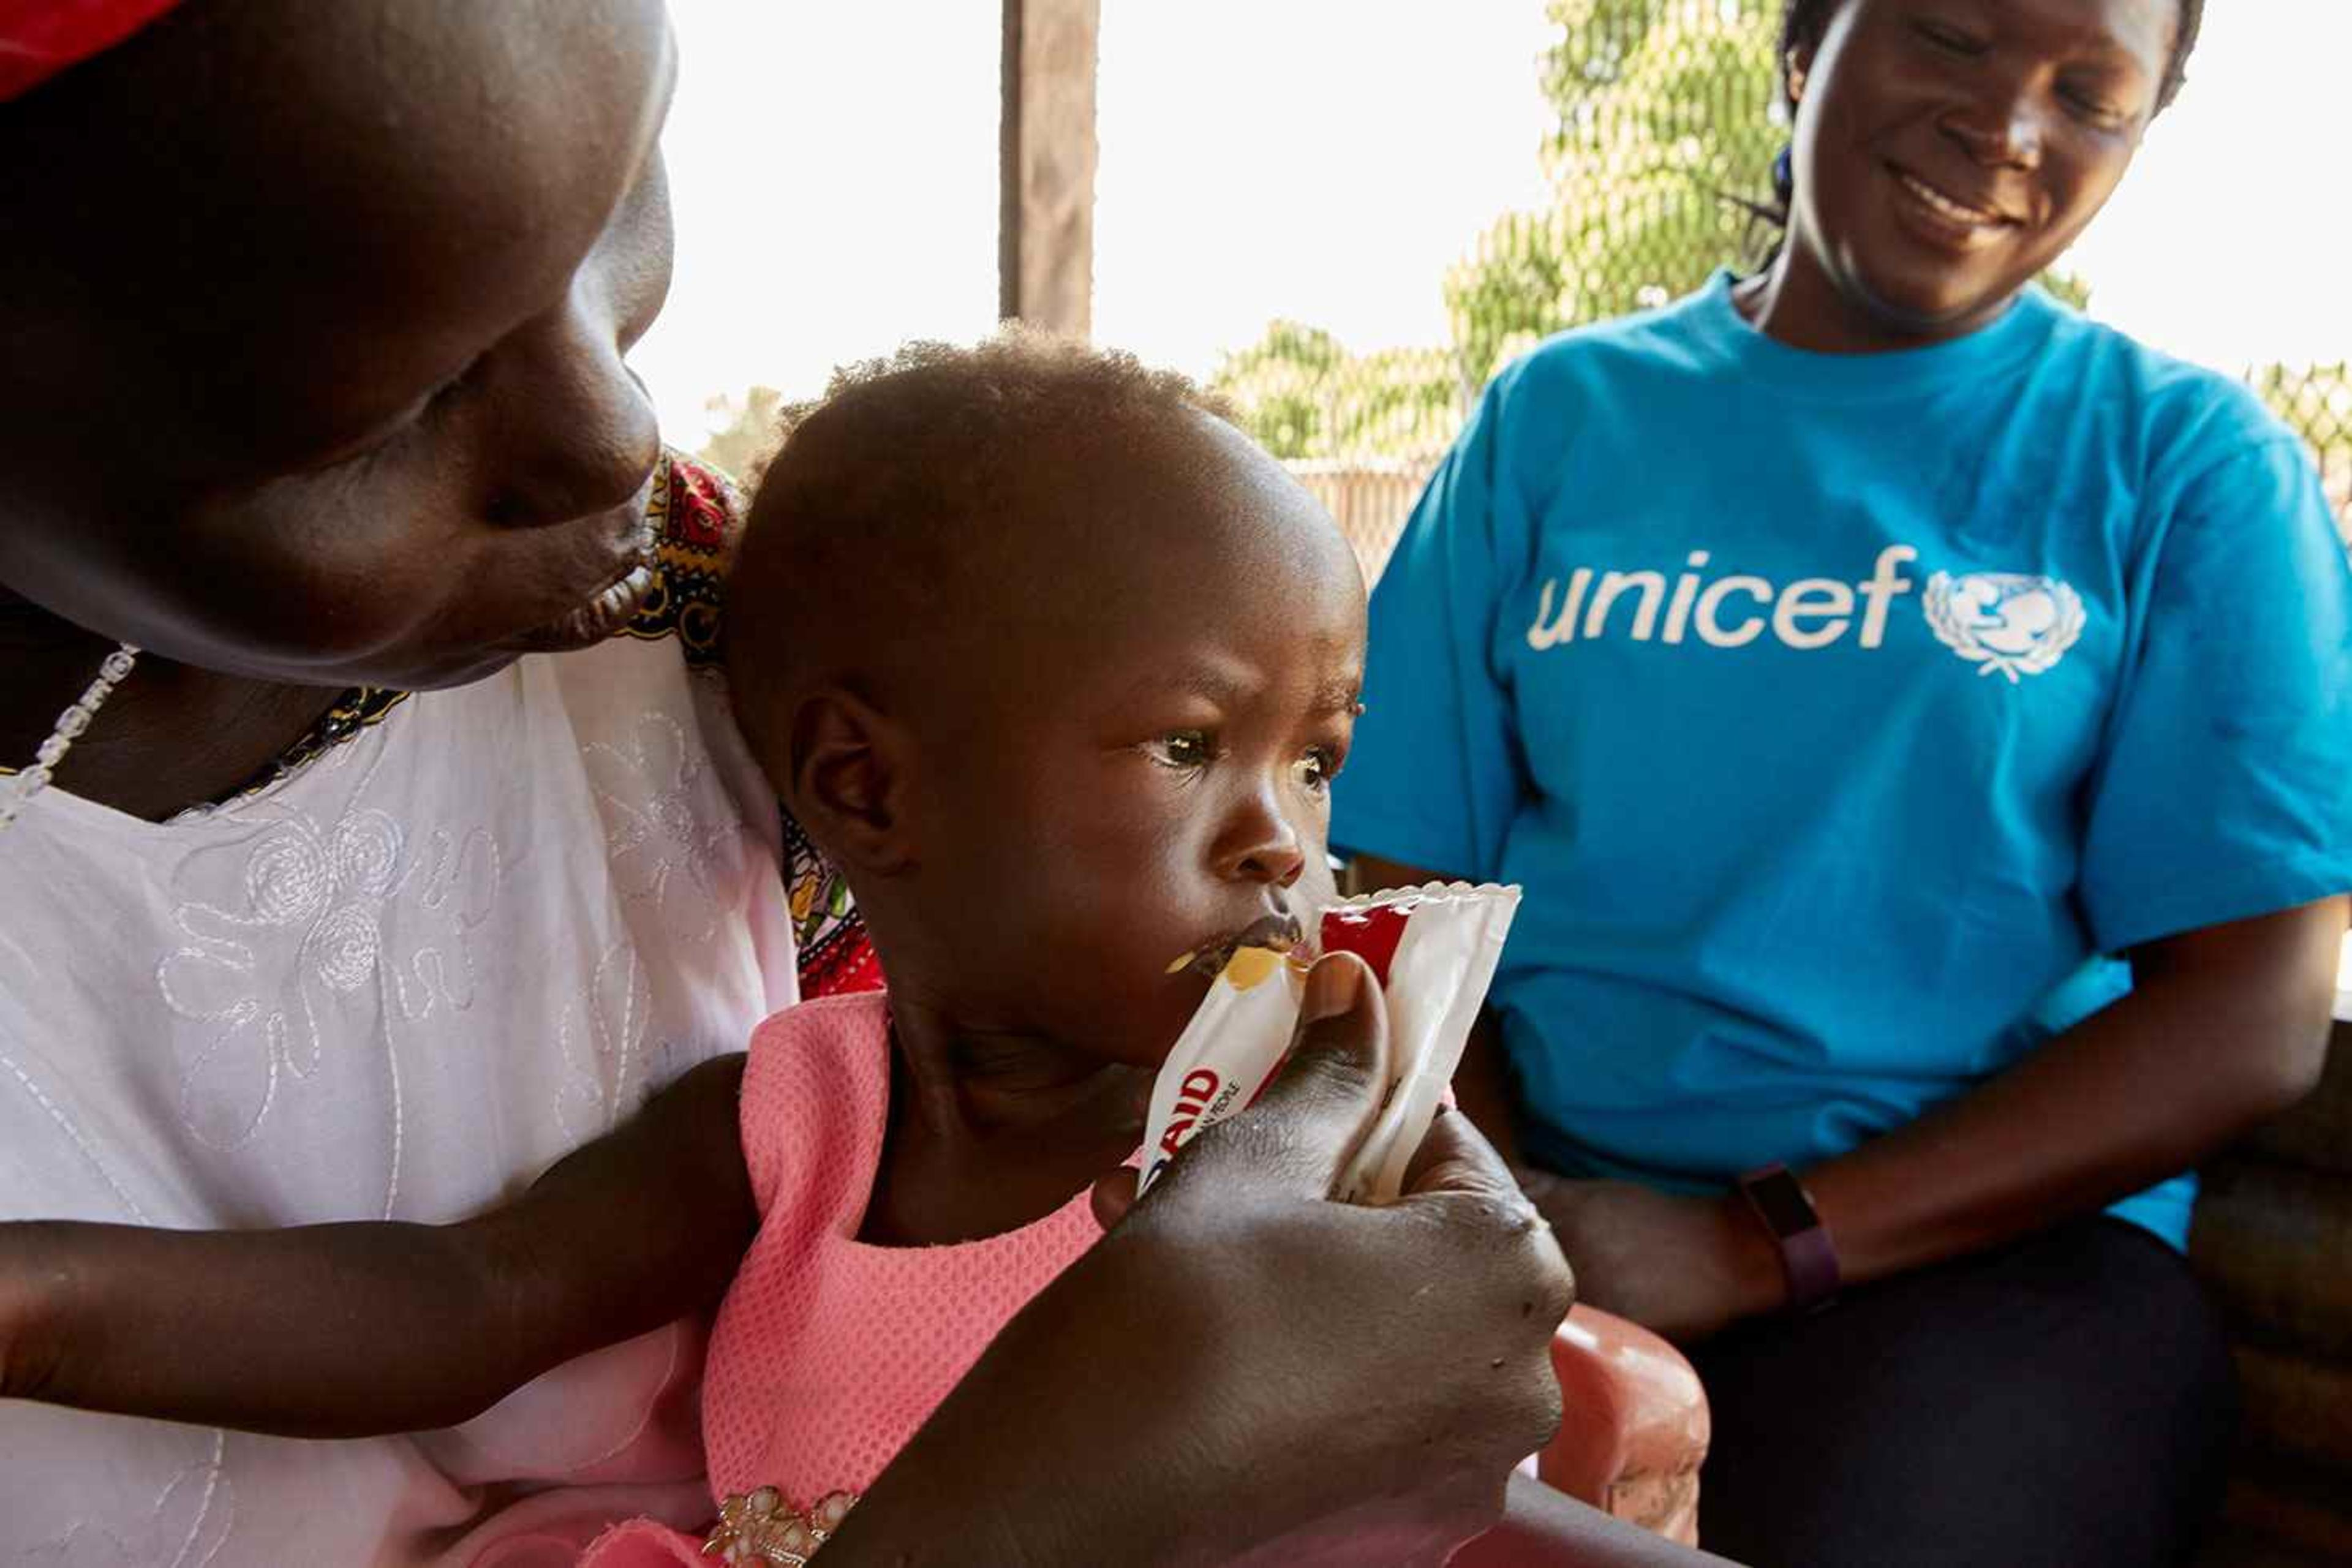 Adut's mother feeds her during her recovery from malnutrition